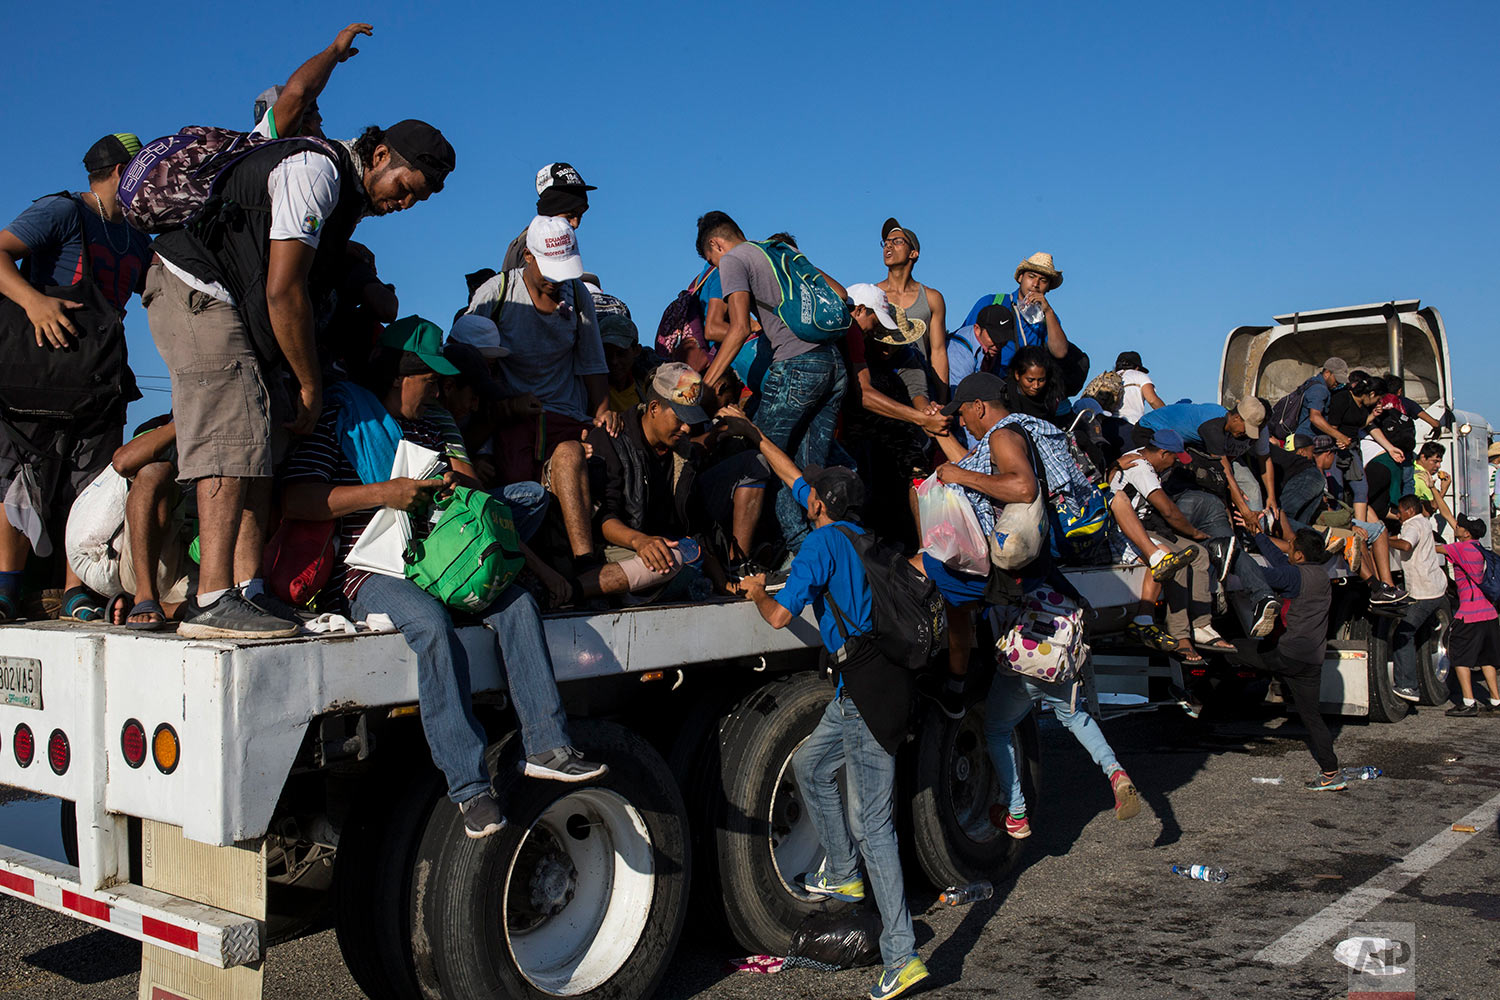 Central American migrants traveling with a caravan to the U.S. climb onto to a trailer bed, hitching a ride to Pijijiapan, Mexico, Thursday, Oct. 25, 2018. (AP Photo/Rodrigo Abd)